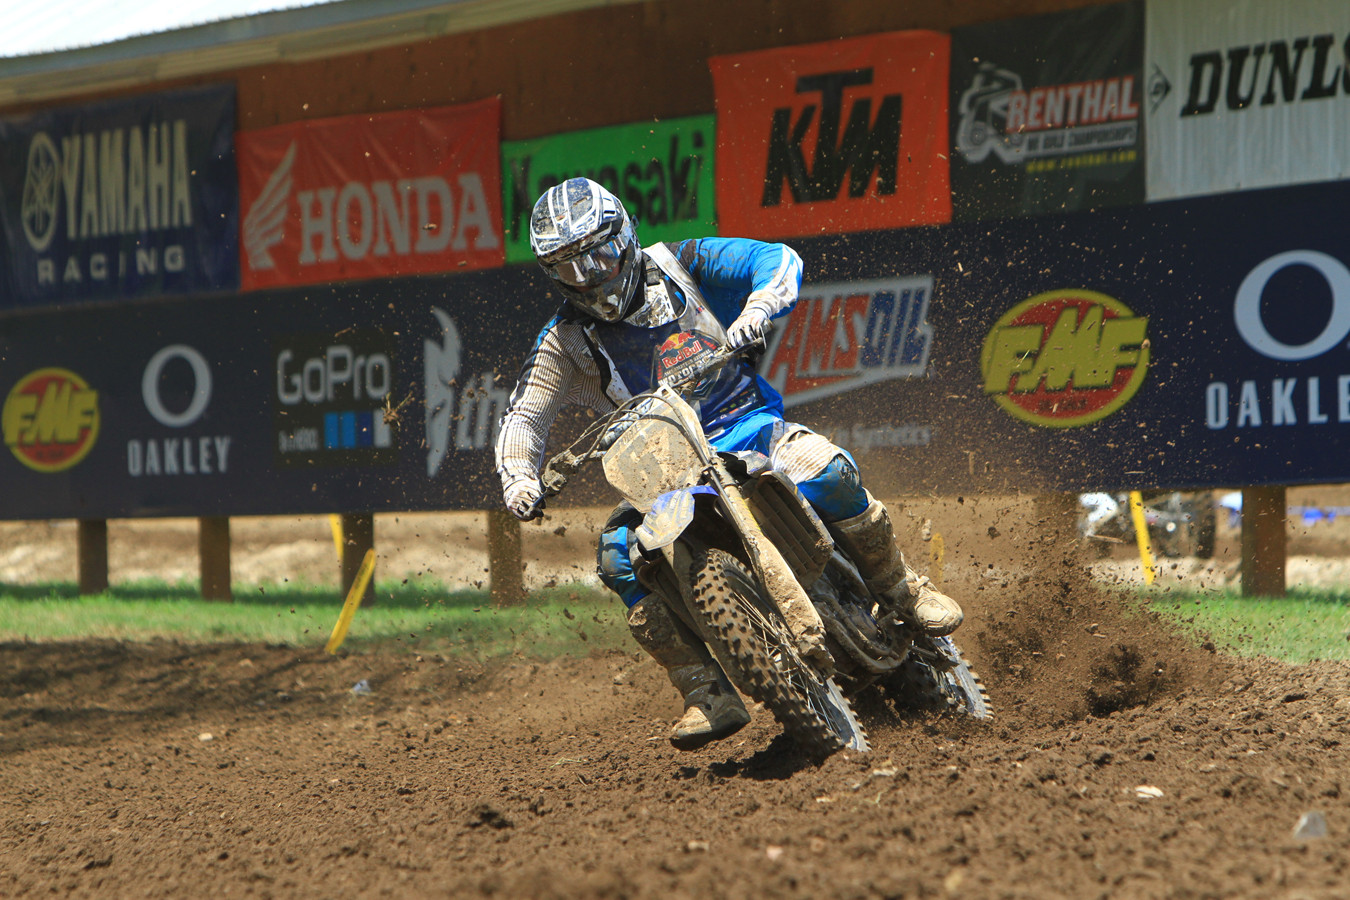 Robbie Reynard - Day 3: 2012 Red Bull AMA Amateur National Motocross Championships - Motocross Pictures - Vital MX